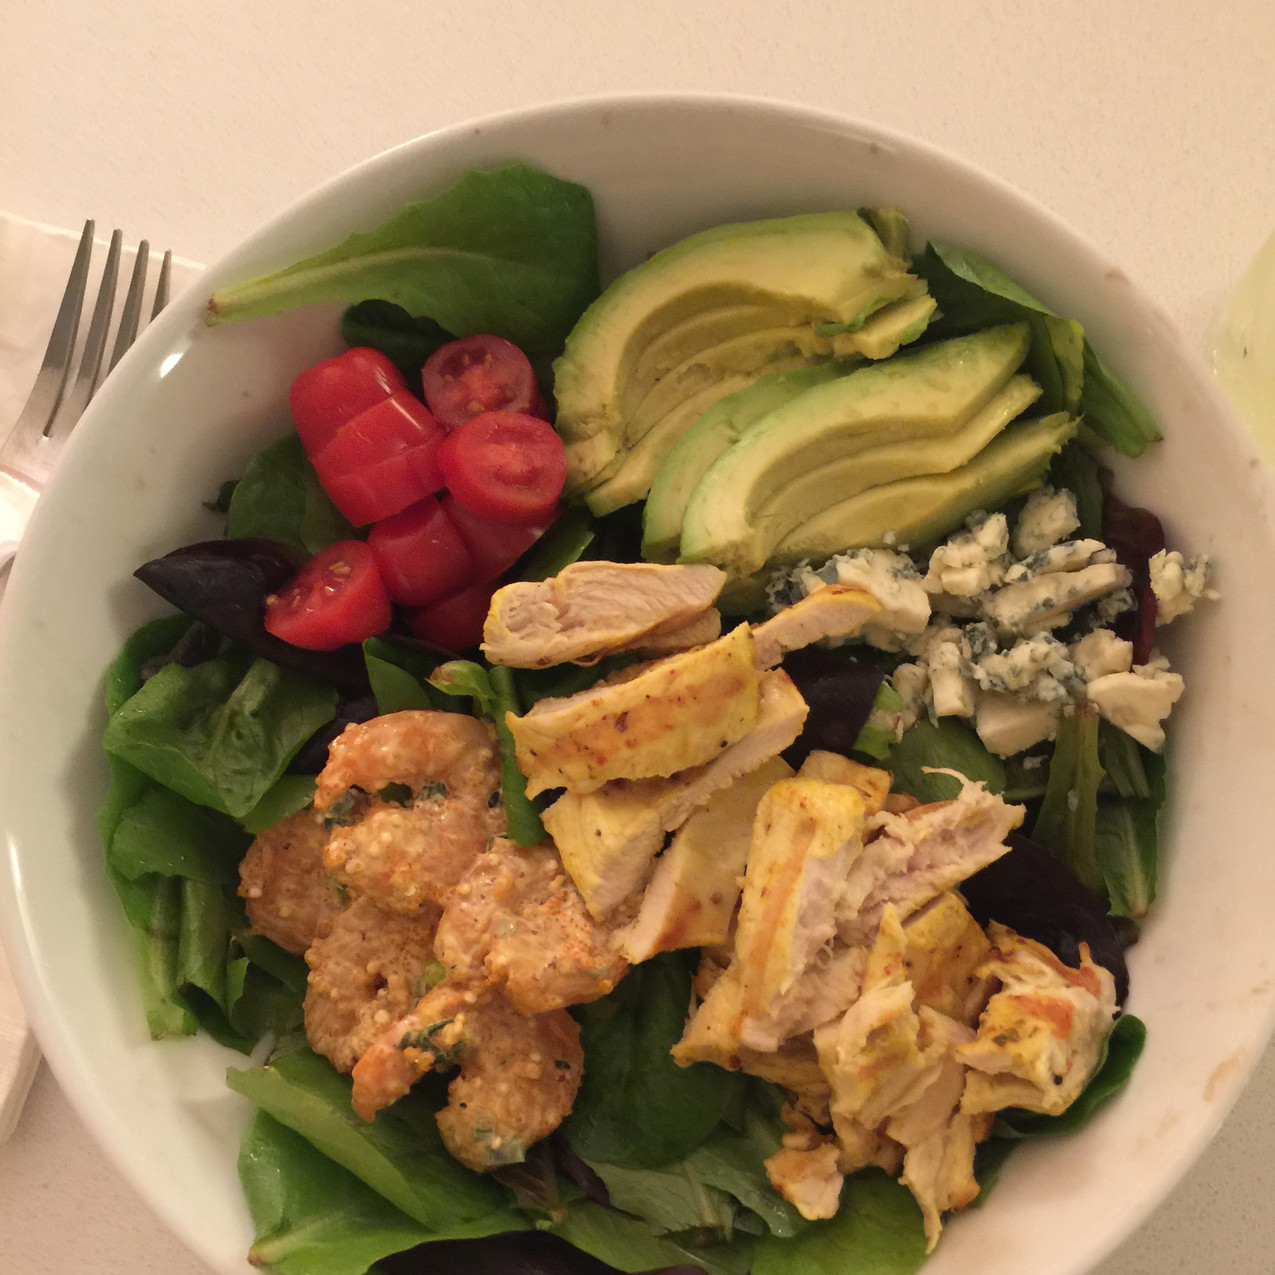 Chicken and shrimp cobb salad